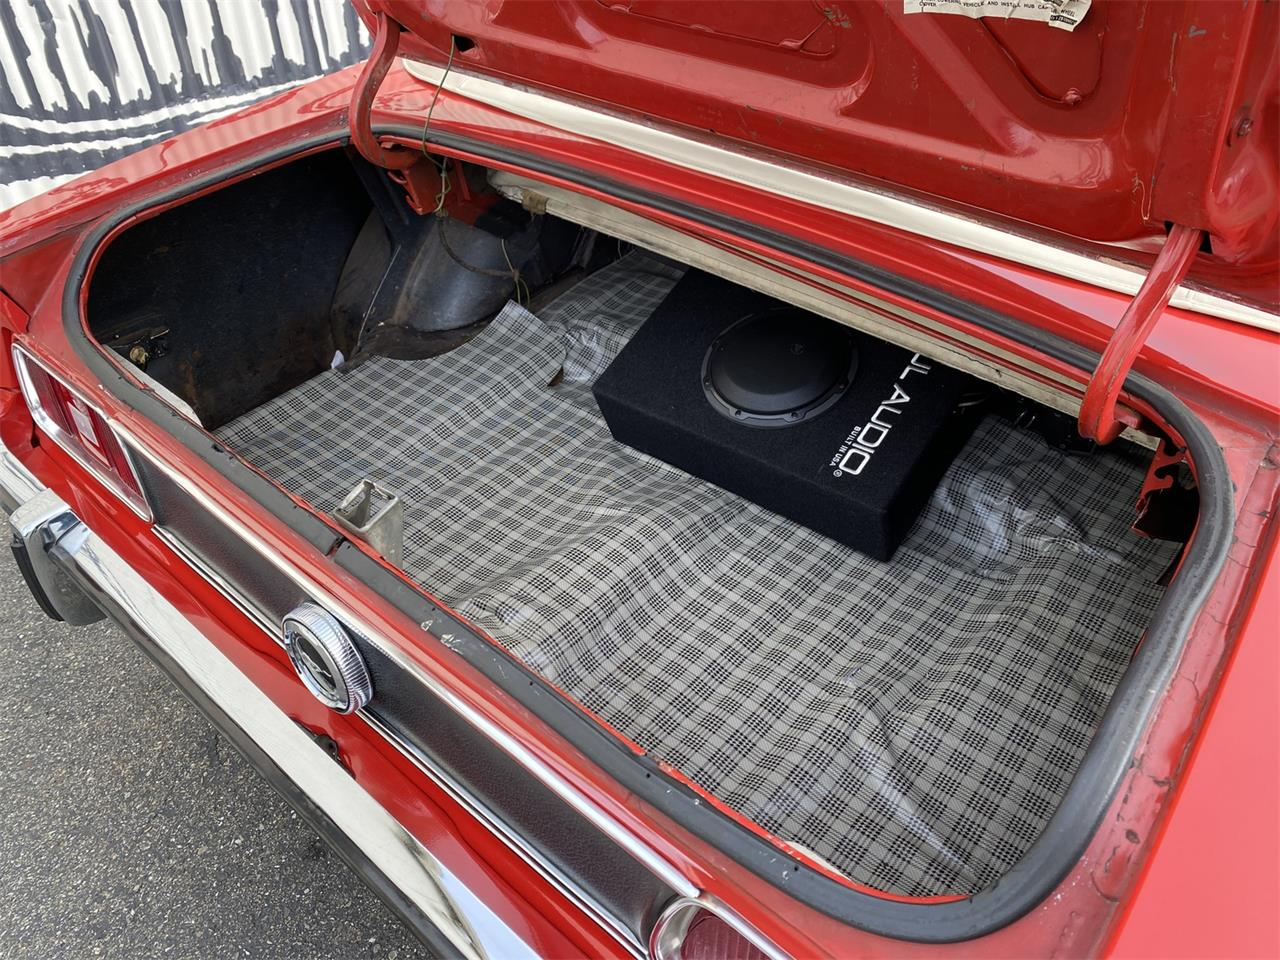 1973 Ford Mustang (CC-1314237) for sale in Fairfield, California